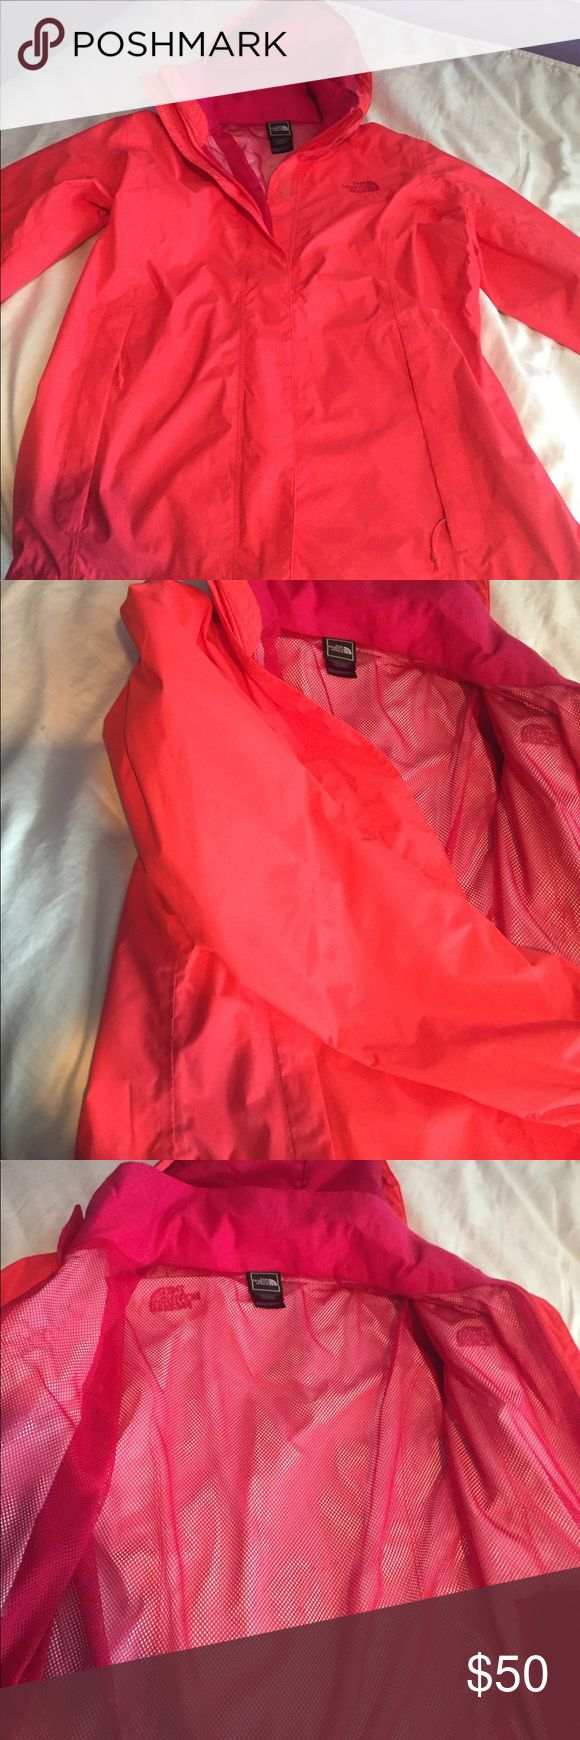 North face women's rain coat- small -rarely worn (1-2 times). Women's size small. North Face Jackets & Coats Utility Jackets